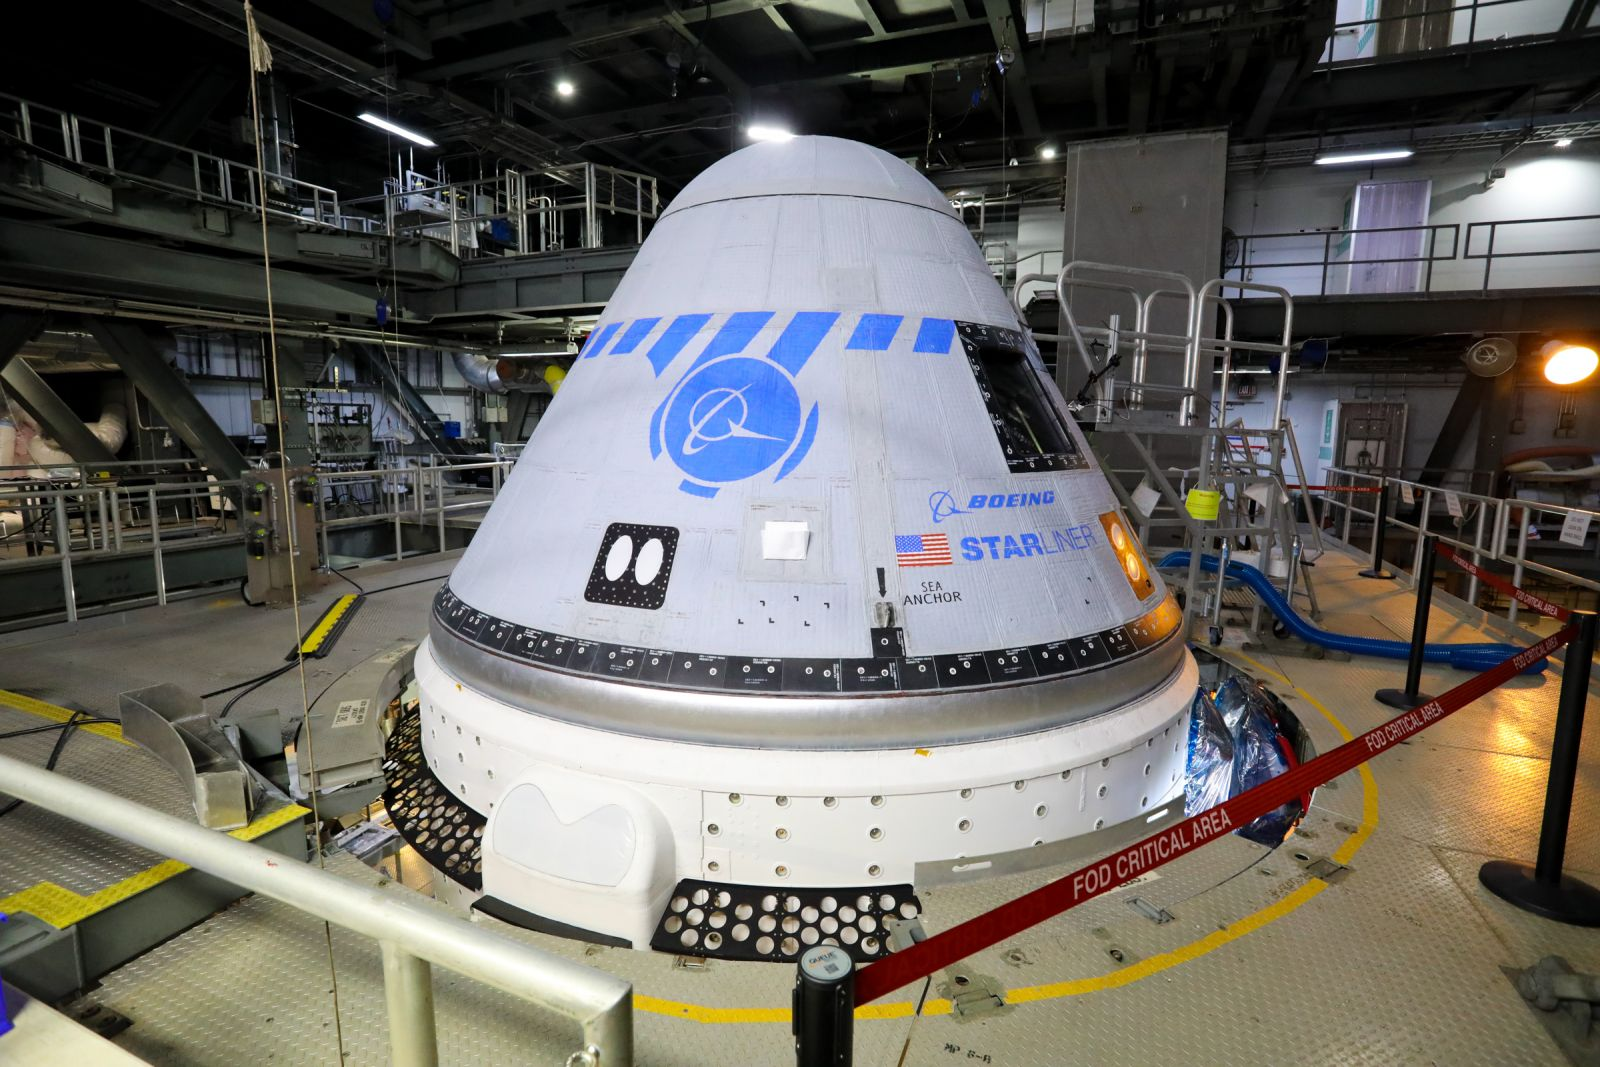 Starliner while at United Launch Alliance's Vertical Integration Facility. Credit: Boeing